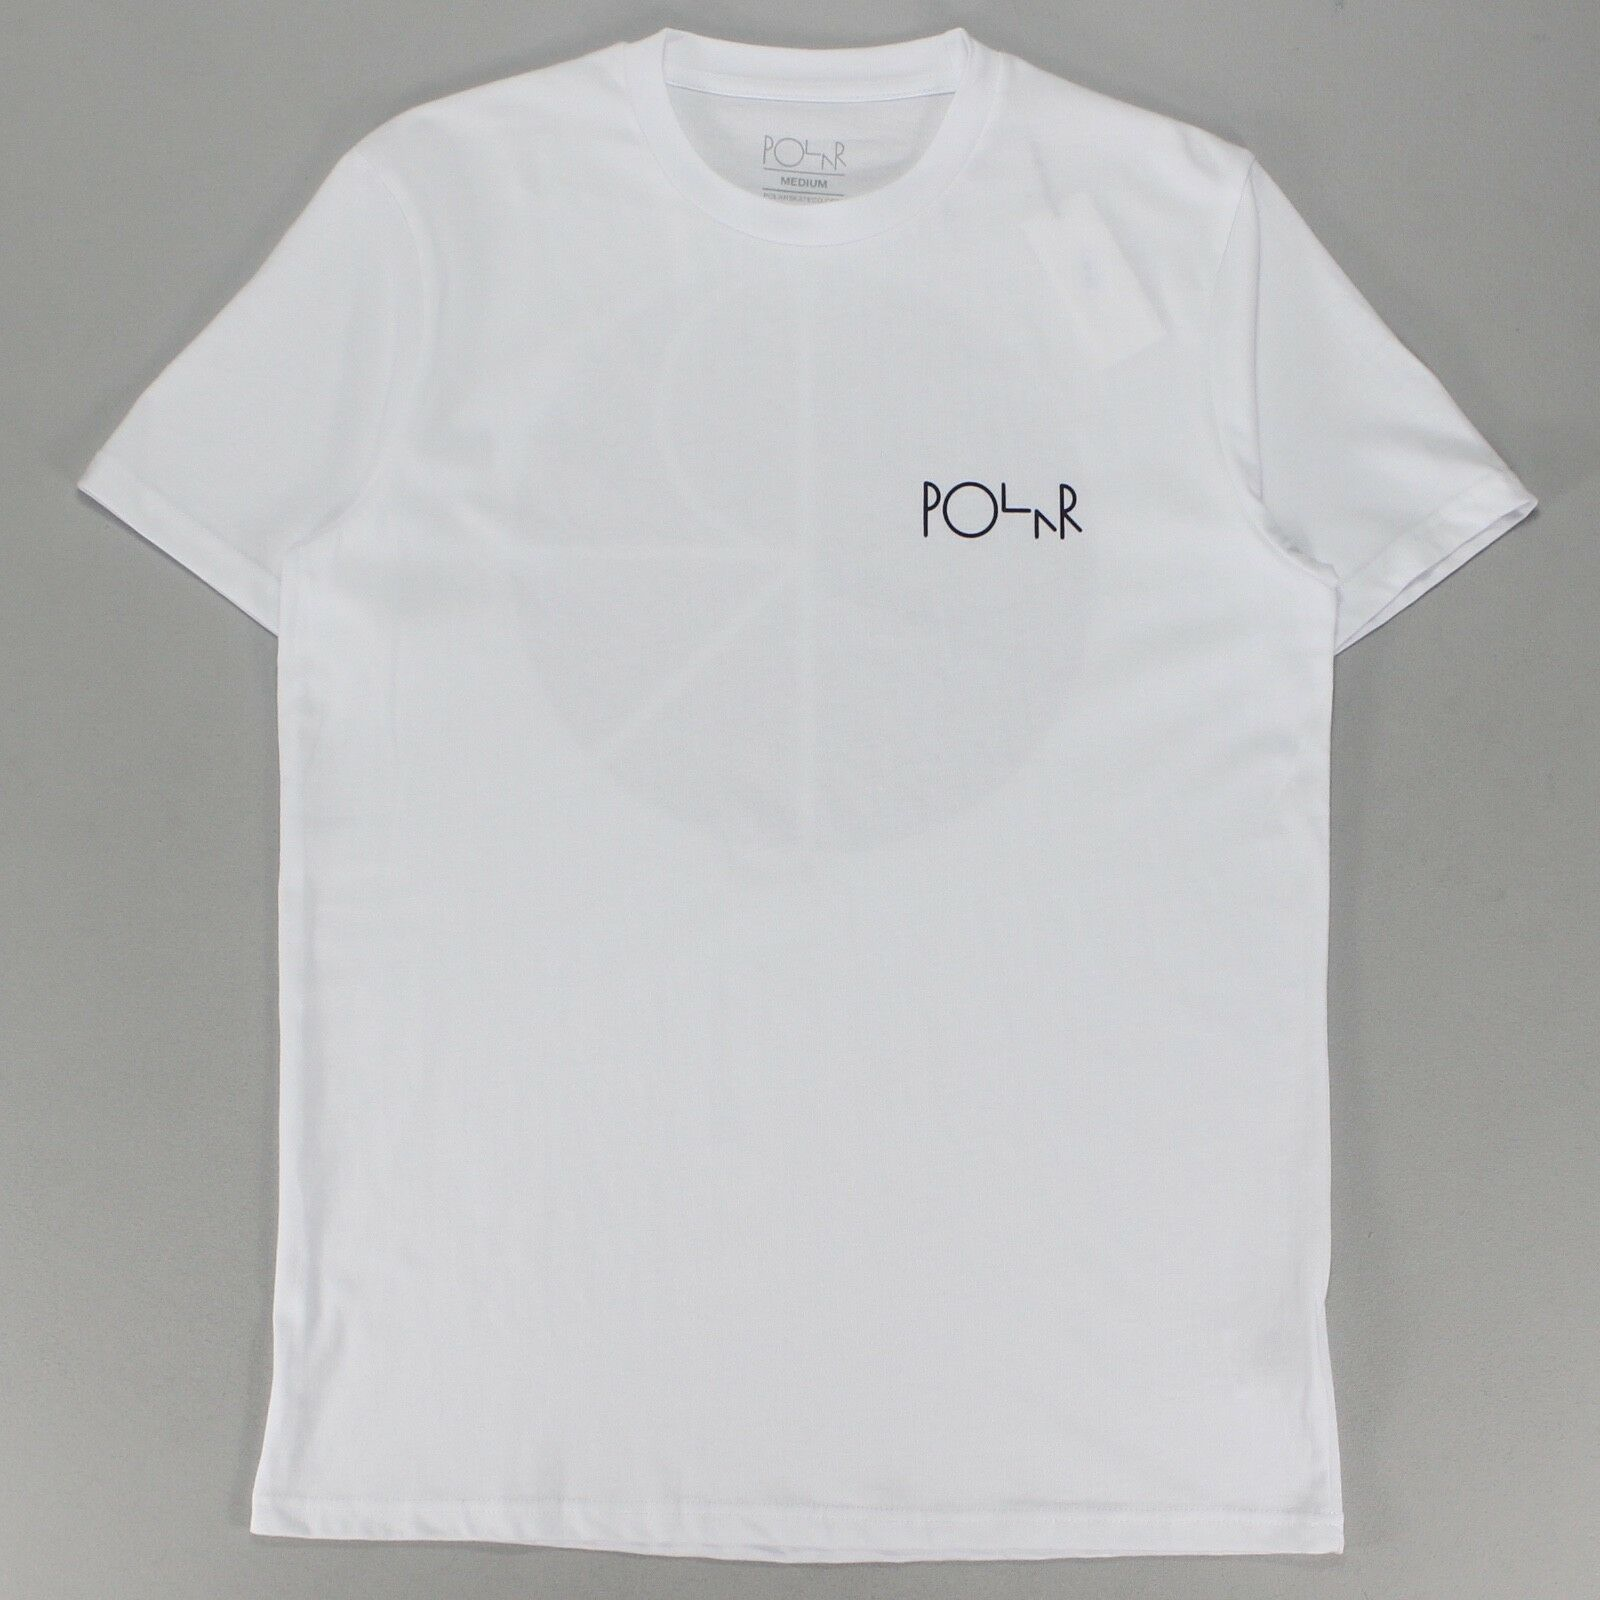 Details about Polar Fill Logo Short Sleeve T-Shirt Tee in White size  S 2d29d9790e3